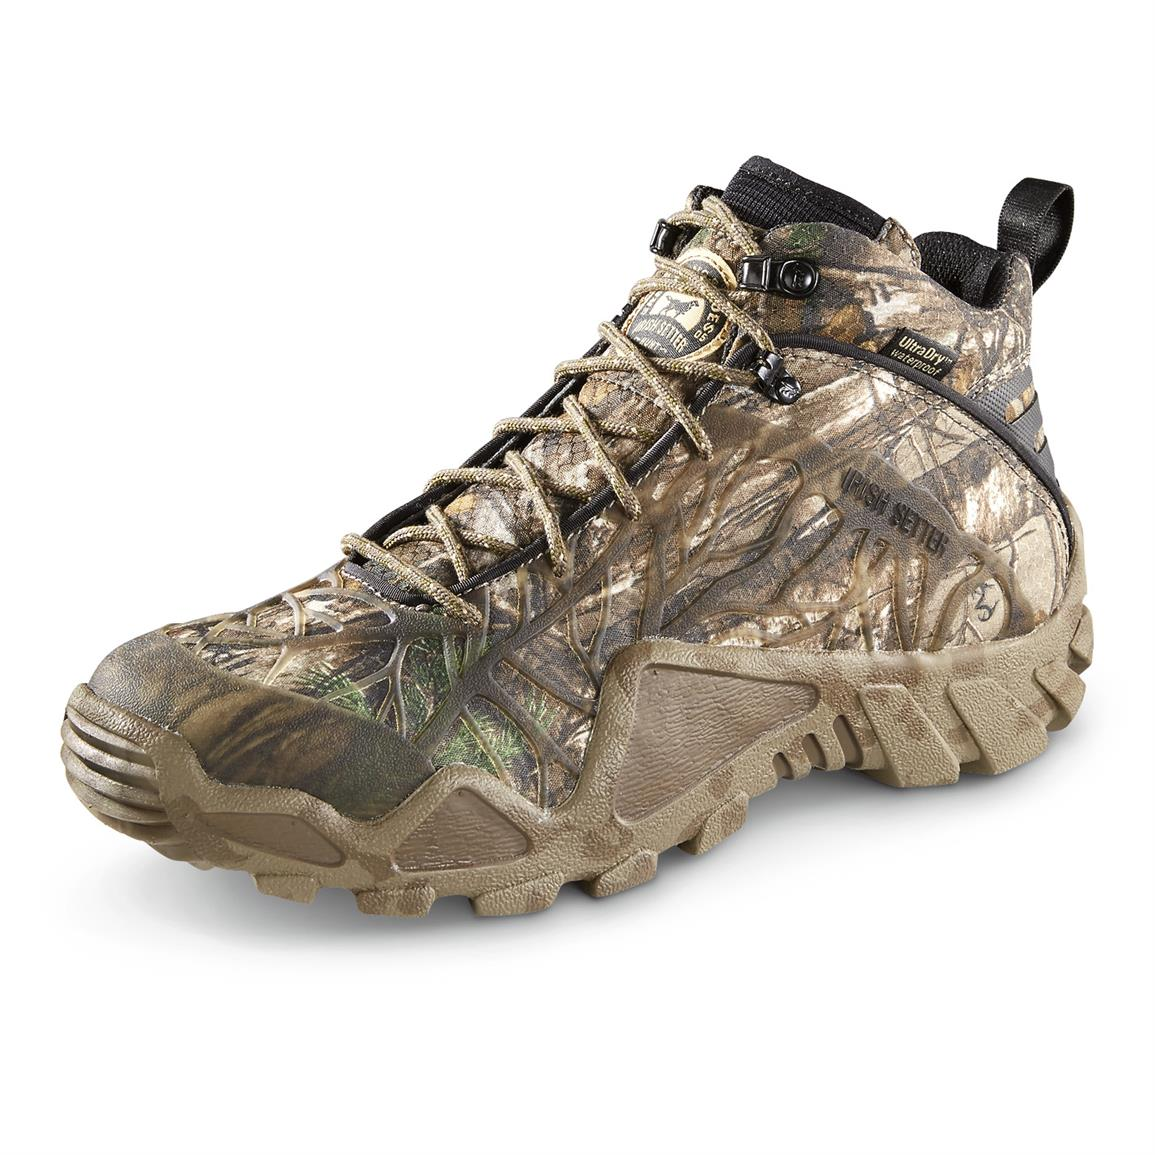 Irish Setter Men's Vaprtrek Waterproof Hiker Boots, Brown Realtree